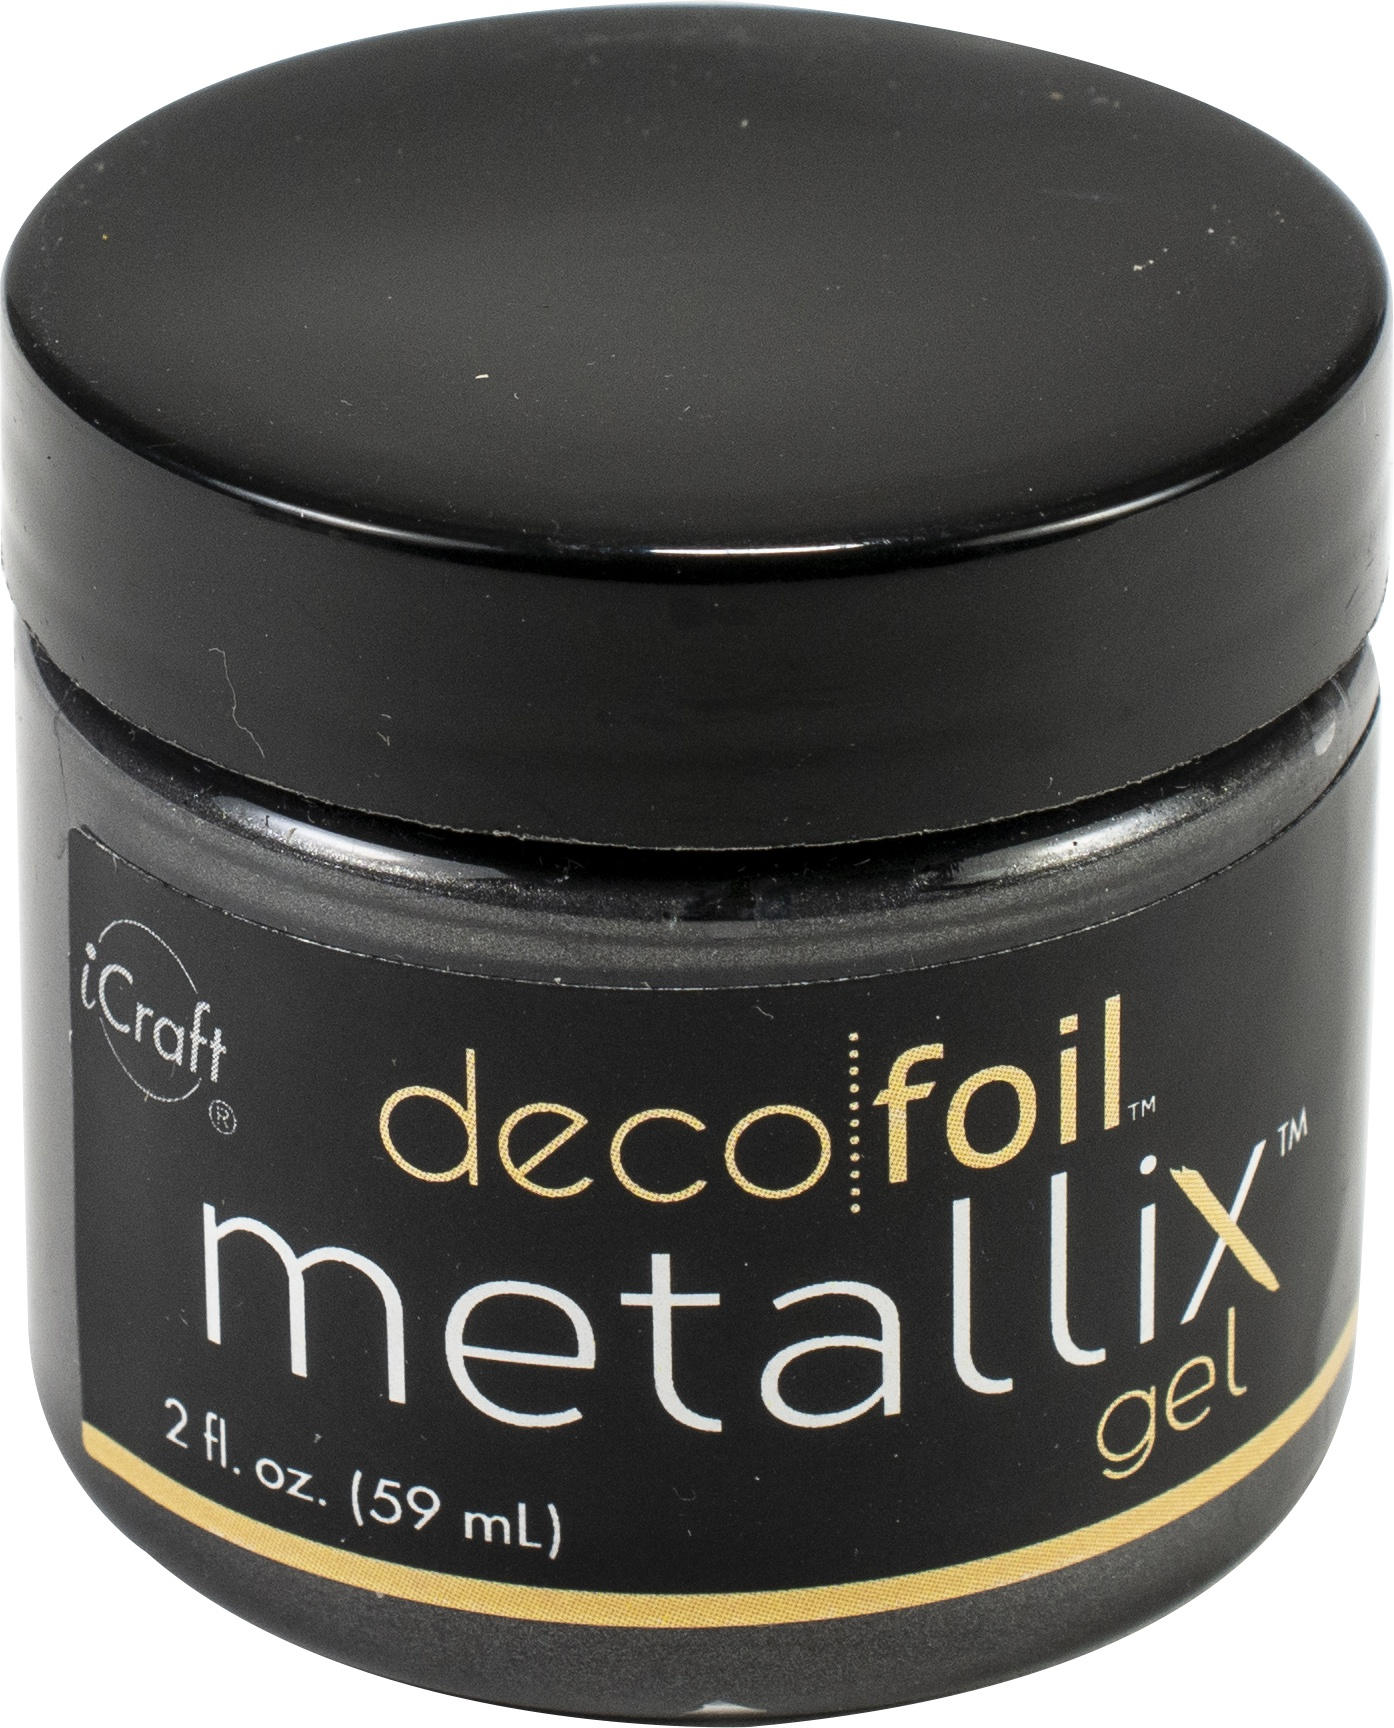 Deco Foil Metallix Gel 2oz-Black Ice